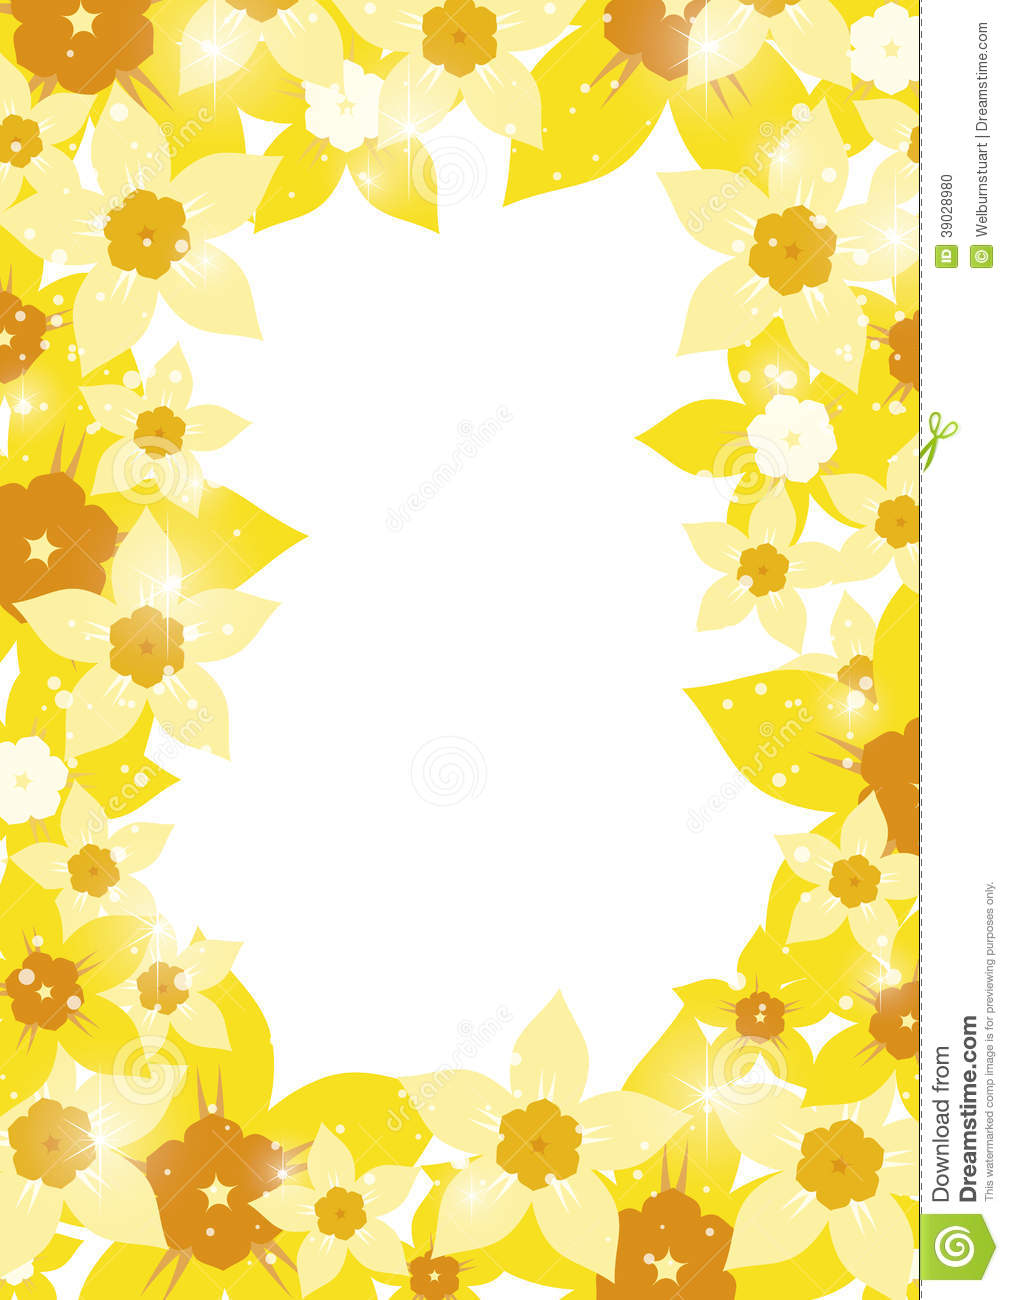 Daffodil border stock vector. Illustration of garden ...